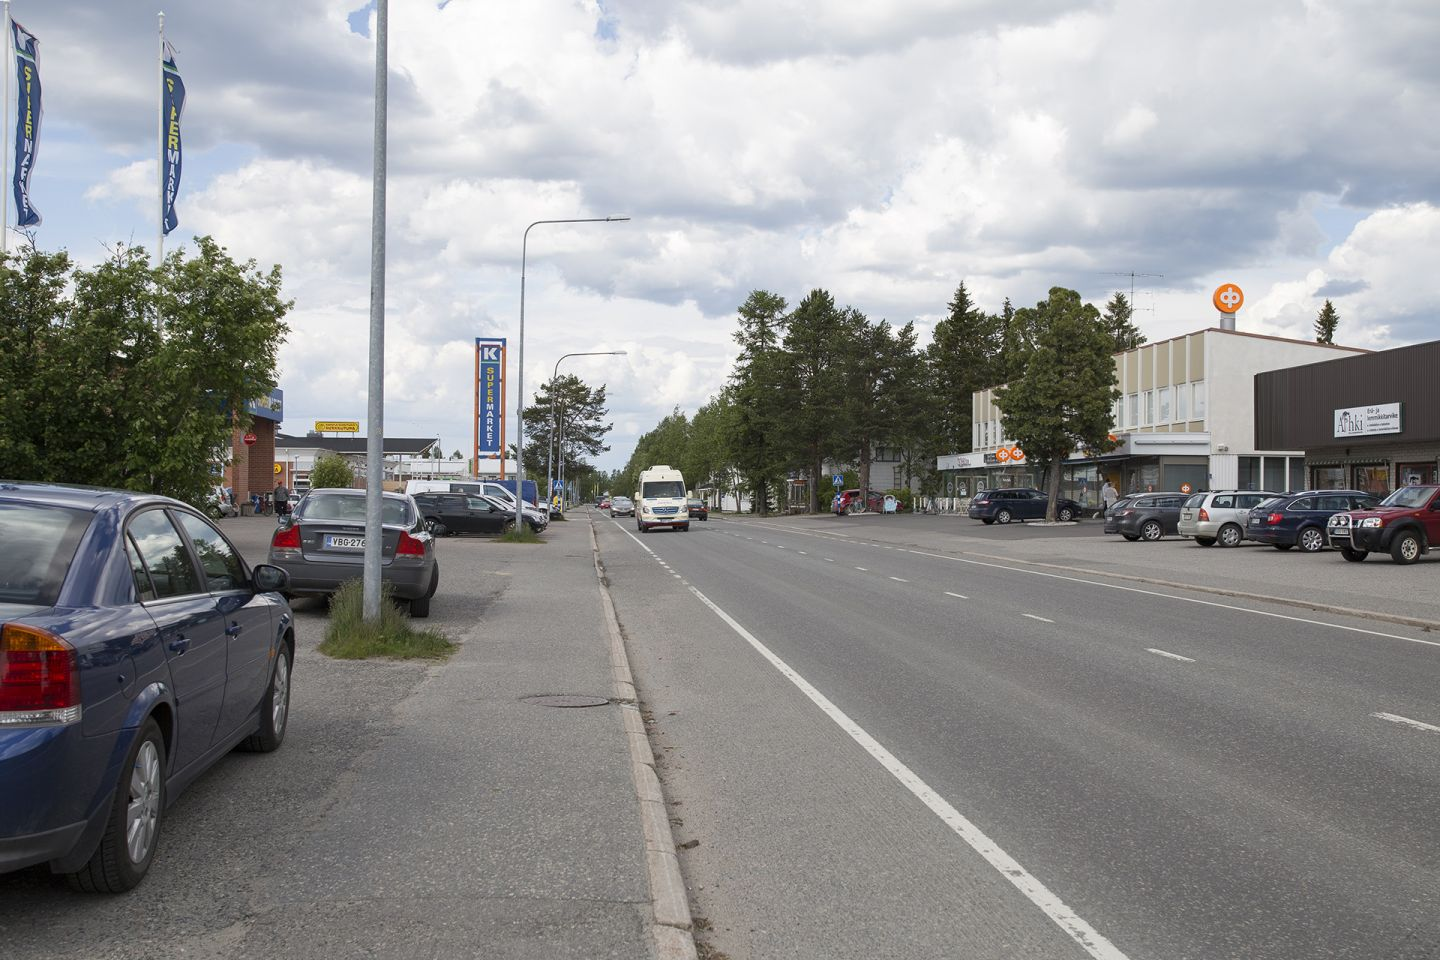 Main street in the arctic city center in Kittilä Lapland